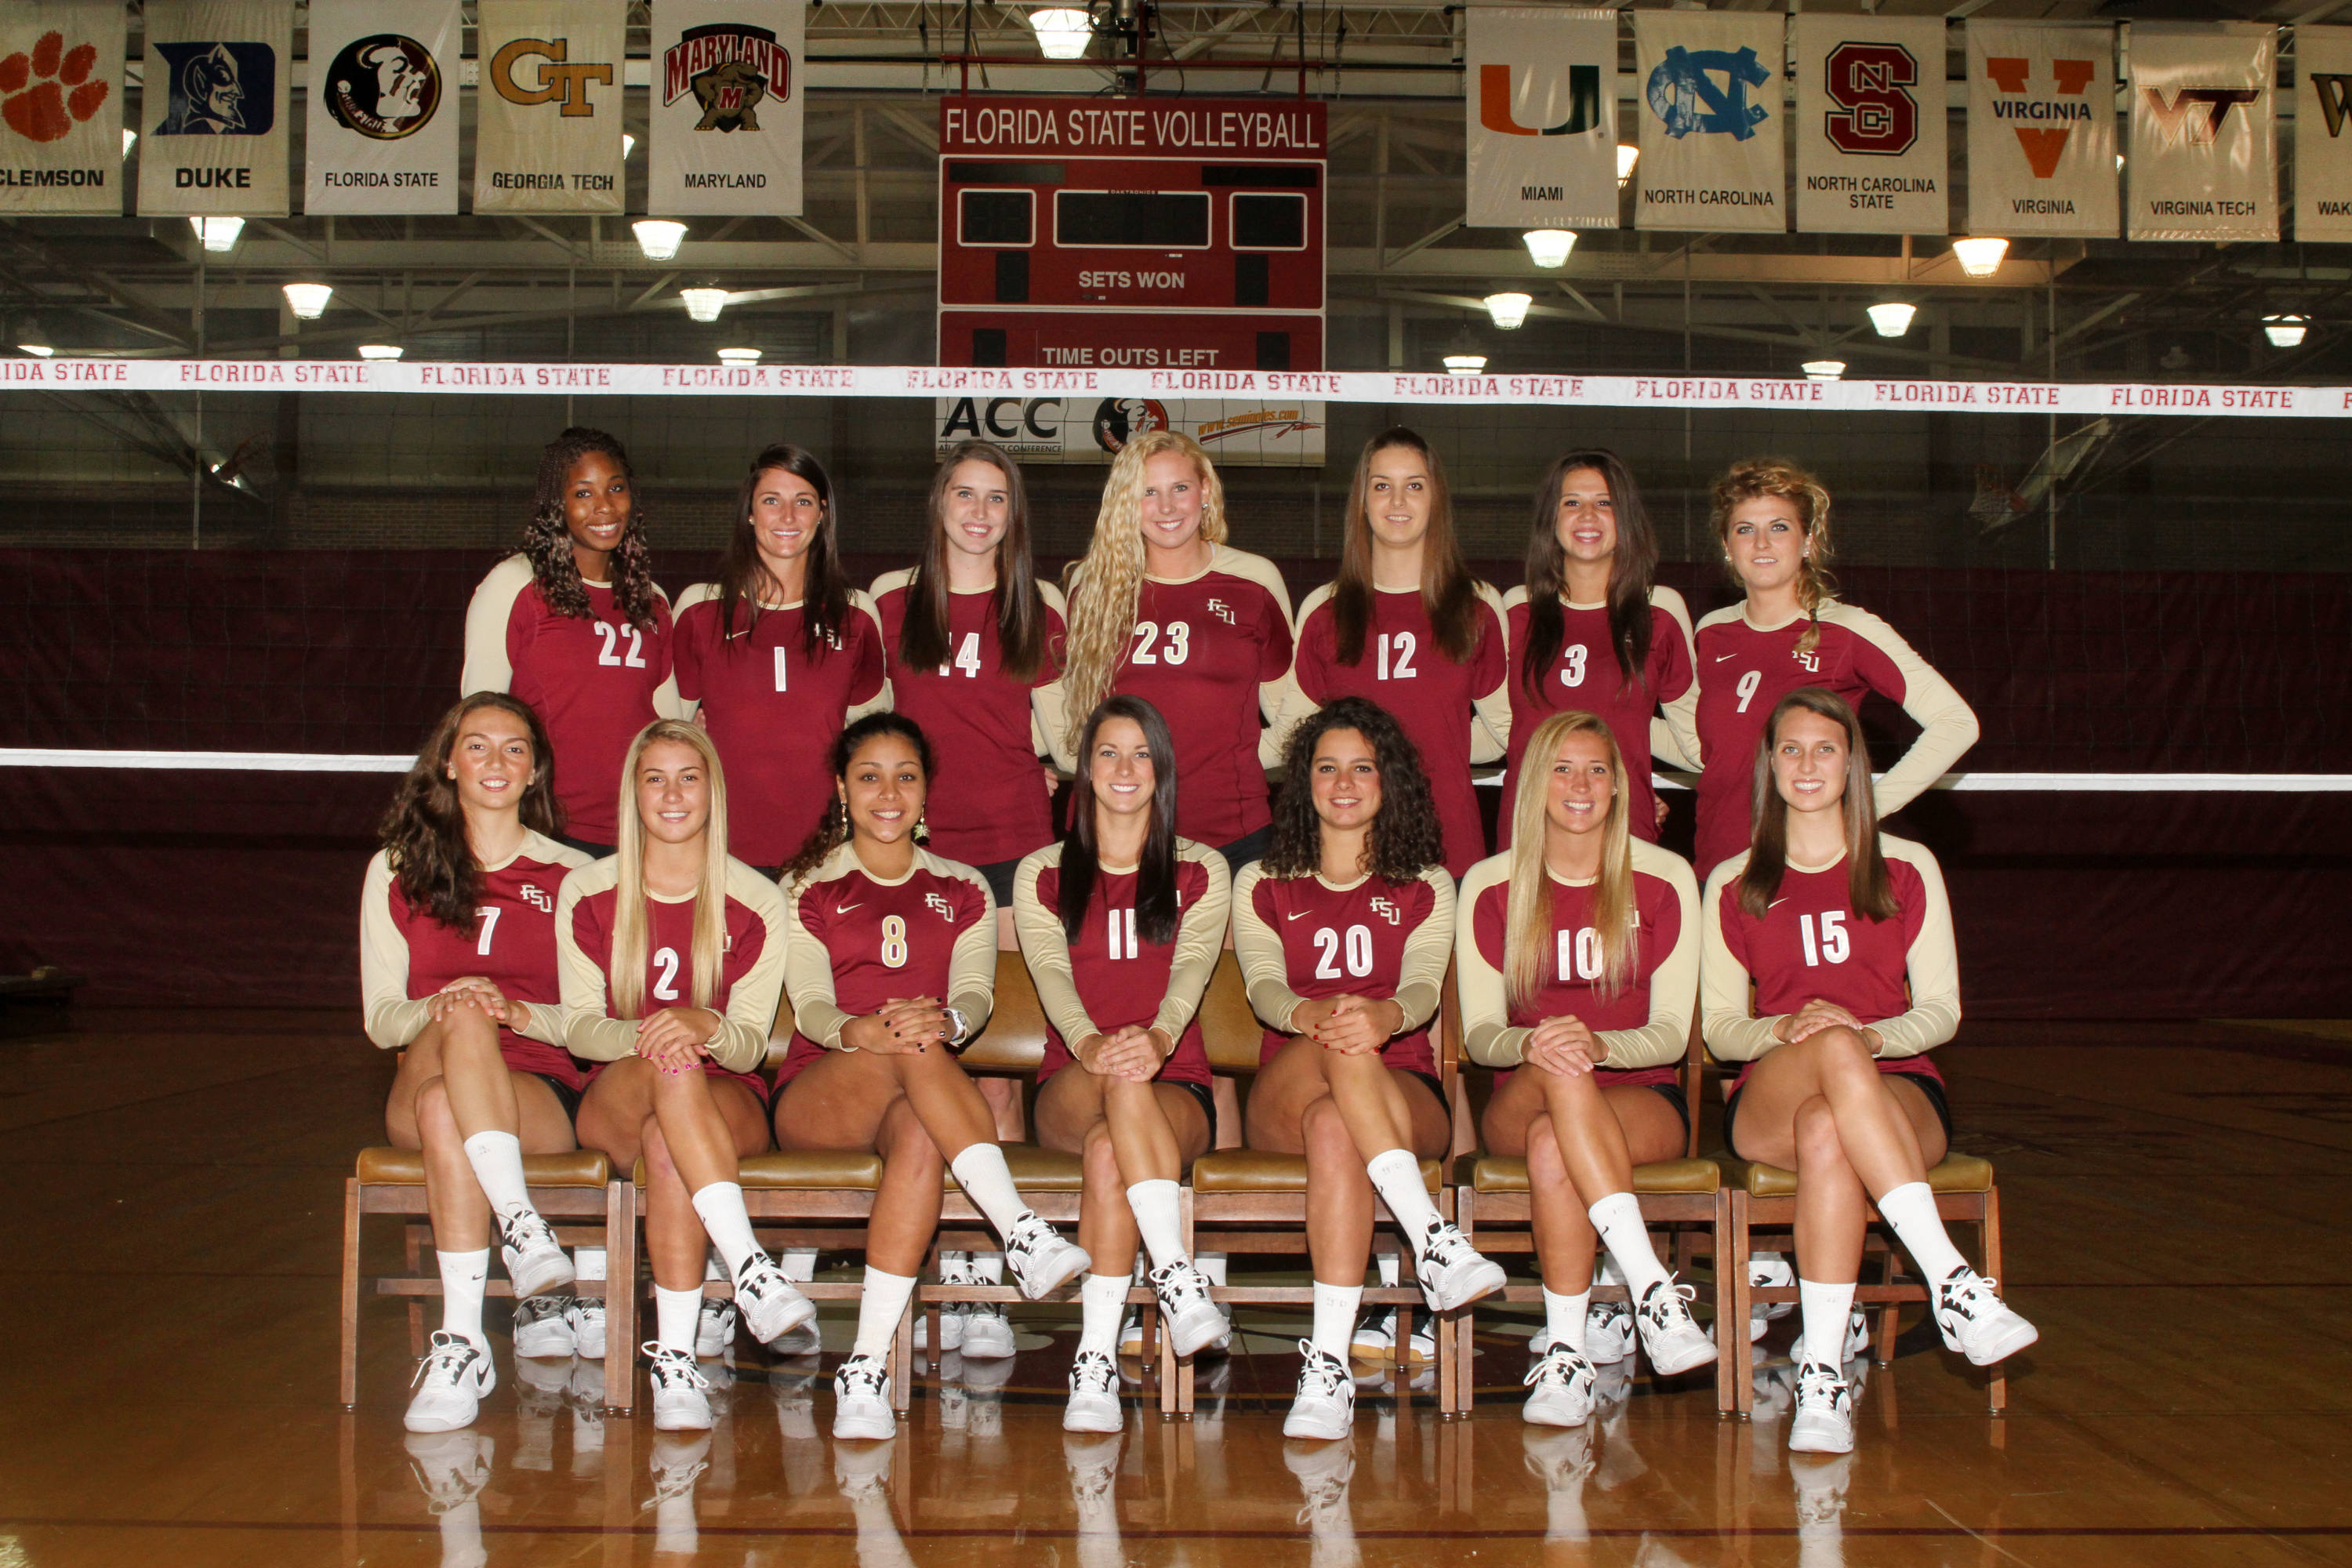 Here is your 2011 Florida State Indoor Volleyball Team